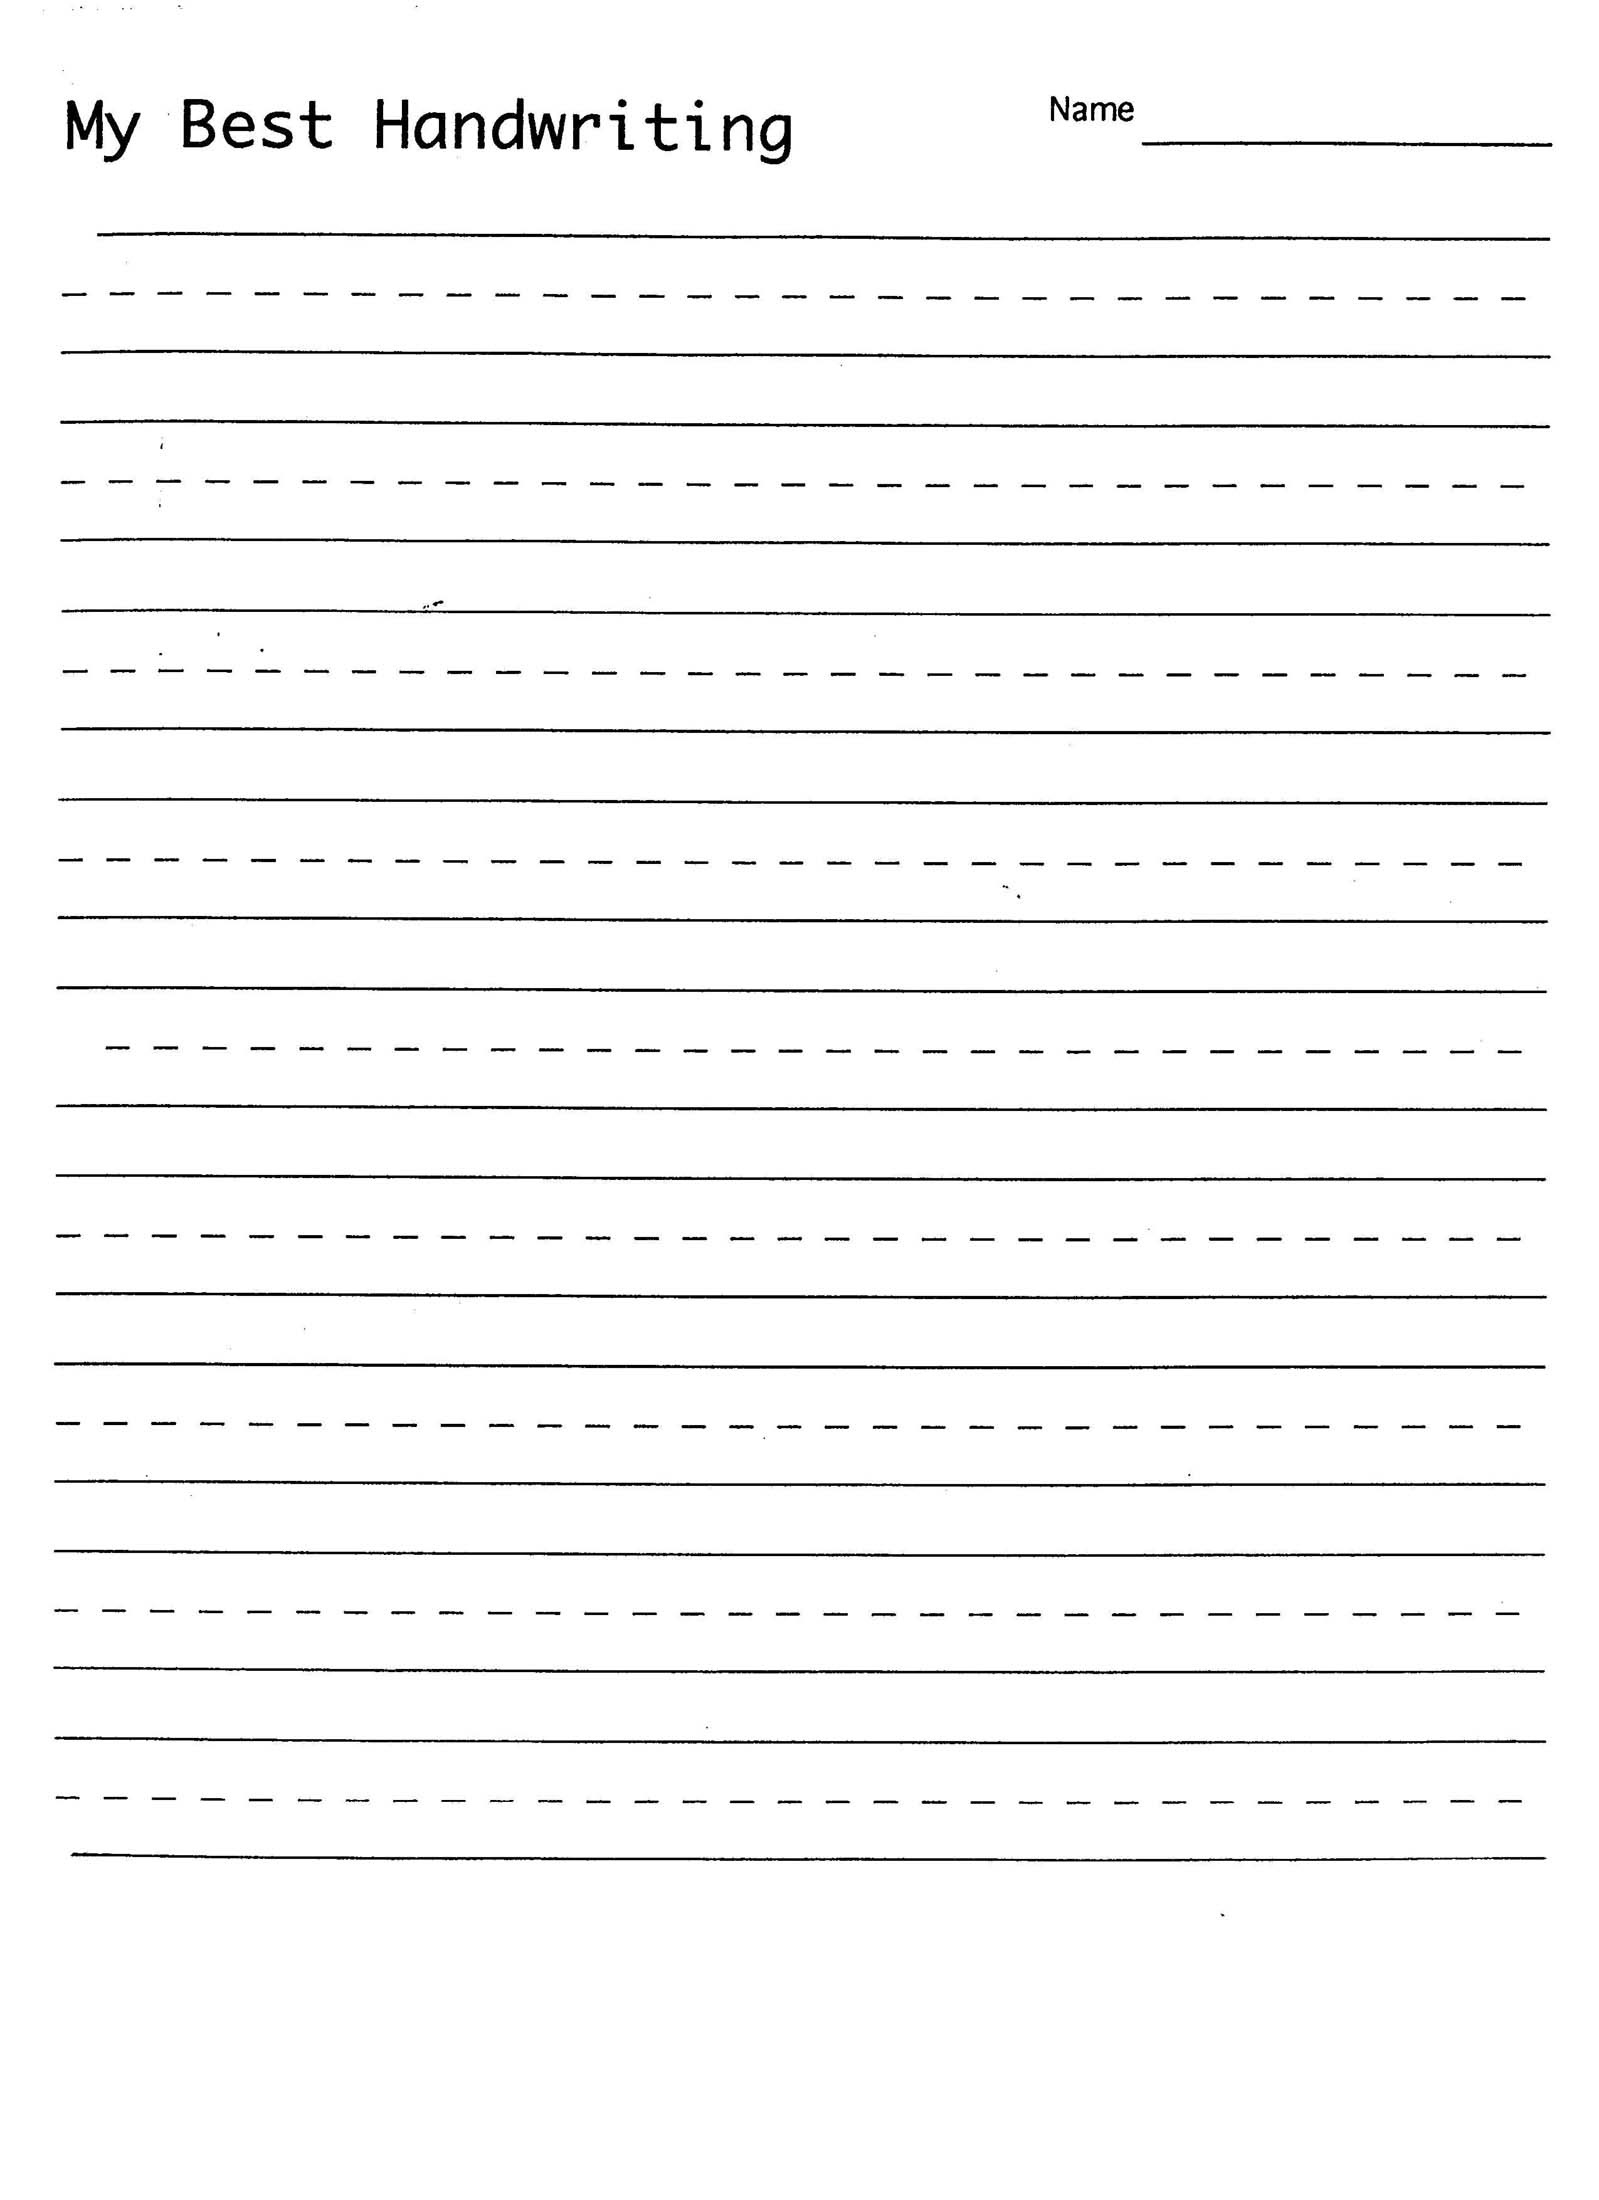 Worksheets Handwriting Worksheets Printable cursive writing worksheets free printable for teaching worksheet practice worksheet